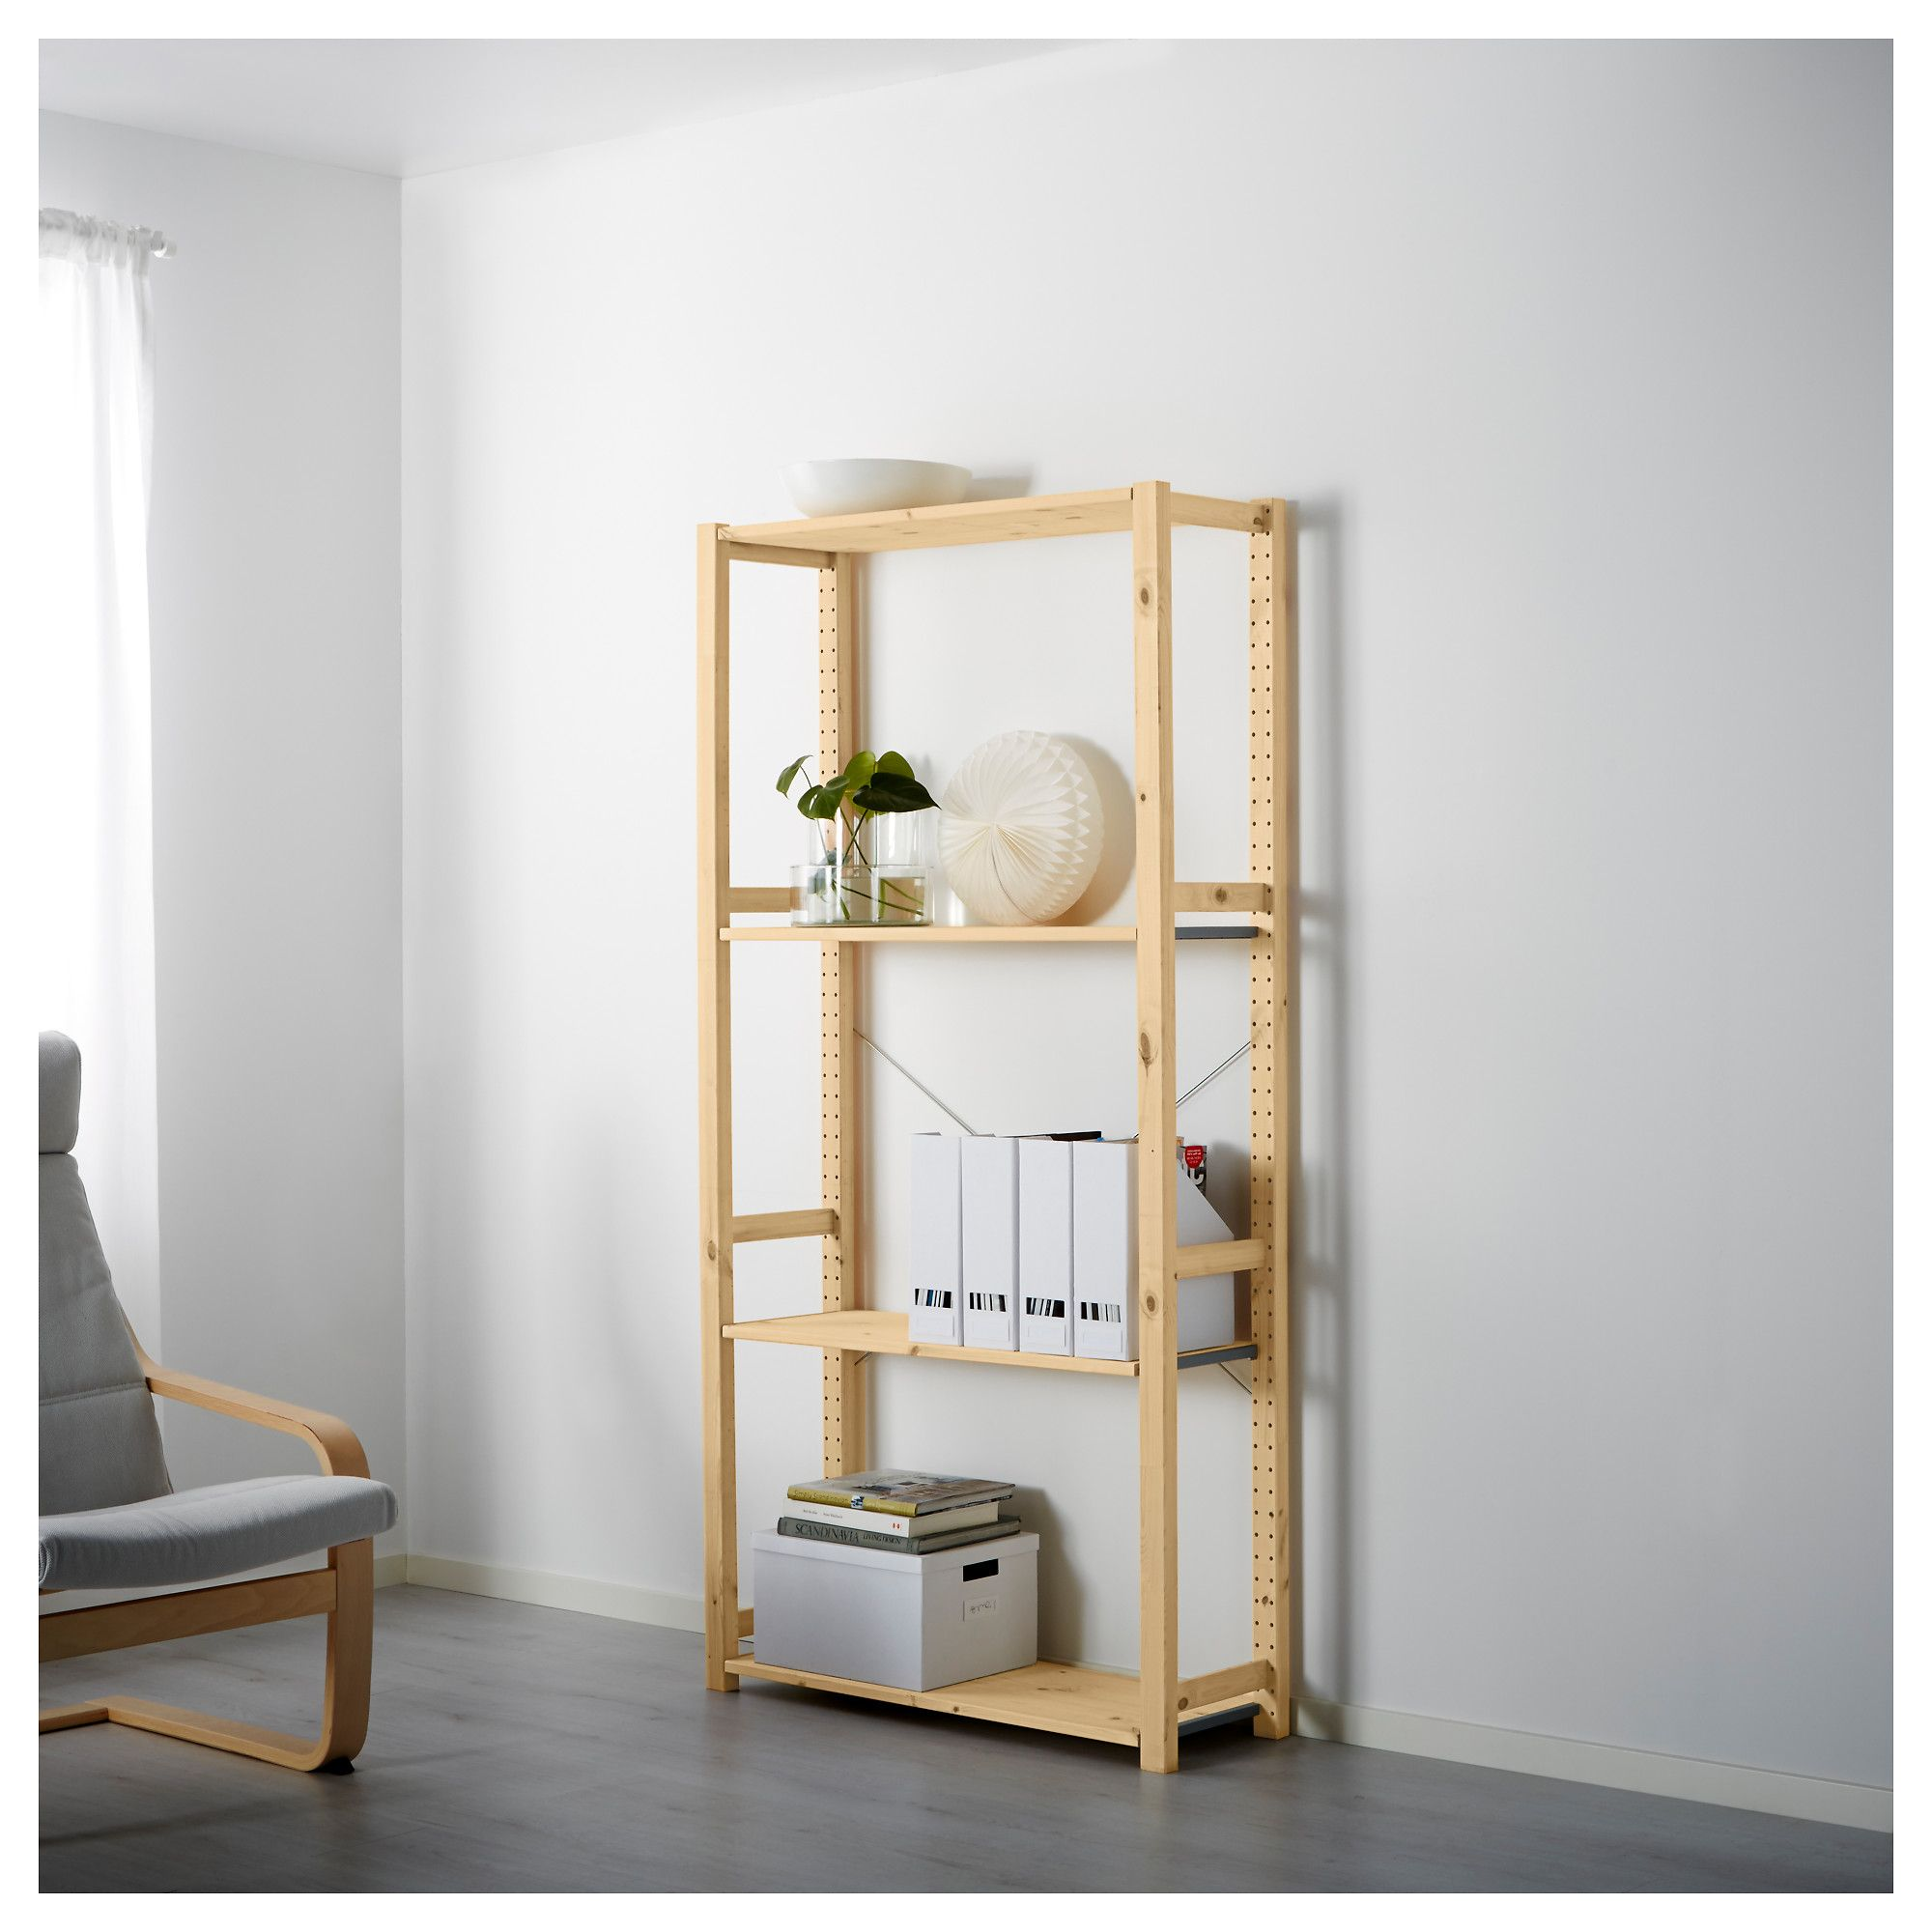 Hallway storage next  IVAR Shelving unit pine  tall storage  Pinterest  Pine